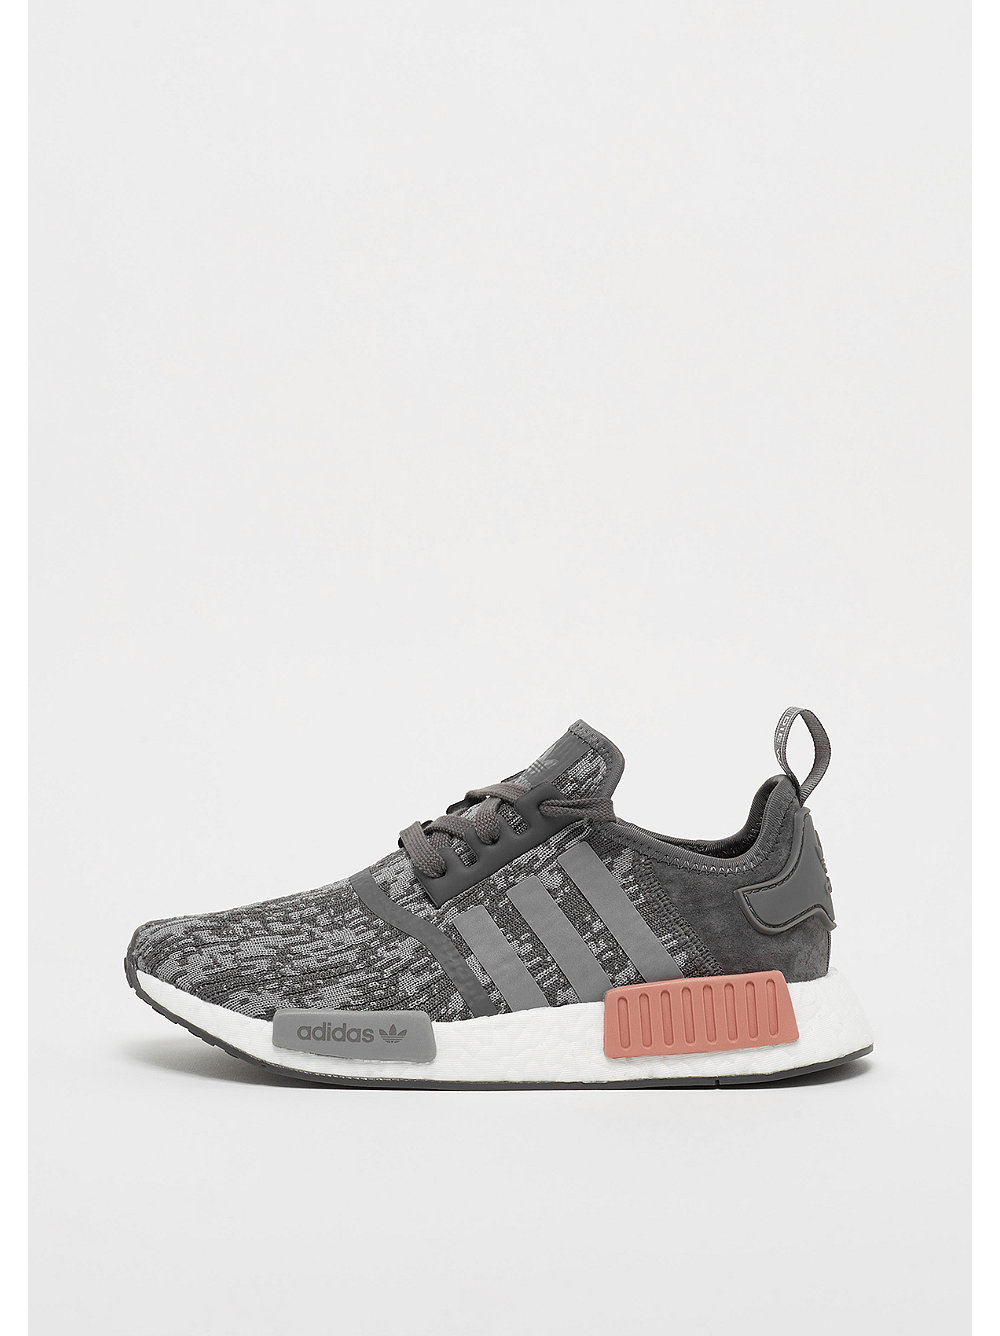 adidas NMD XR1 black camo in SNIPES Online Shop : Cheap